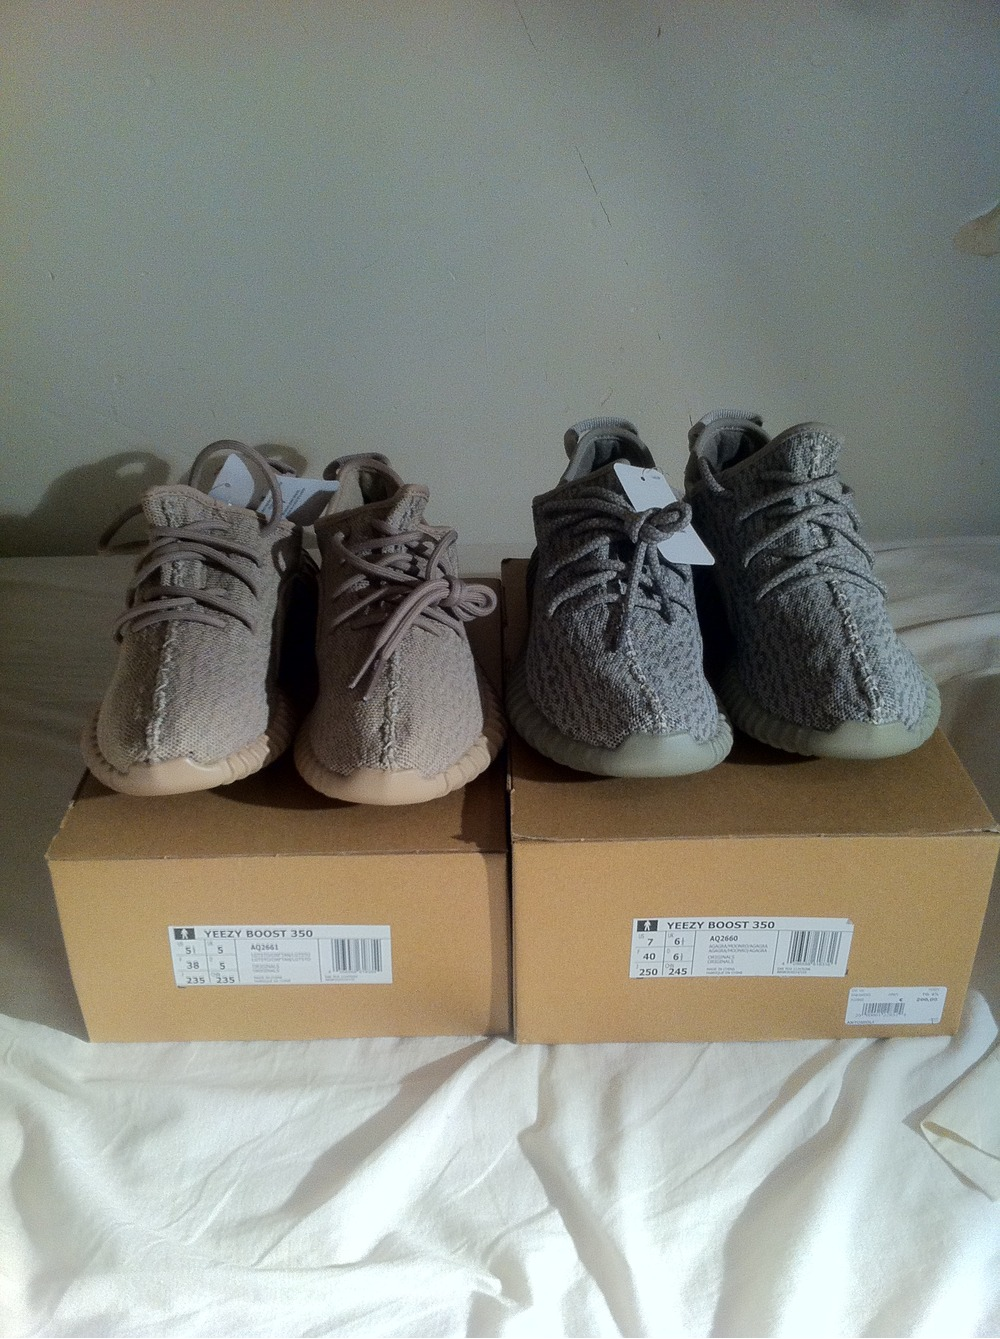 eabfb2c47ddb1 Yeezy 350 Boost Sale Beluga Sneaker News JC White. Tips on Kicks  Real vs  Fake Yeezy boost 350 on Sale Oxford Tan